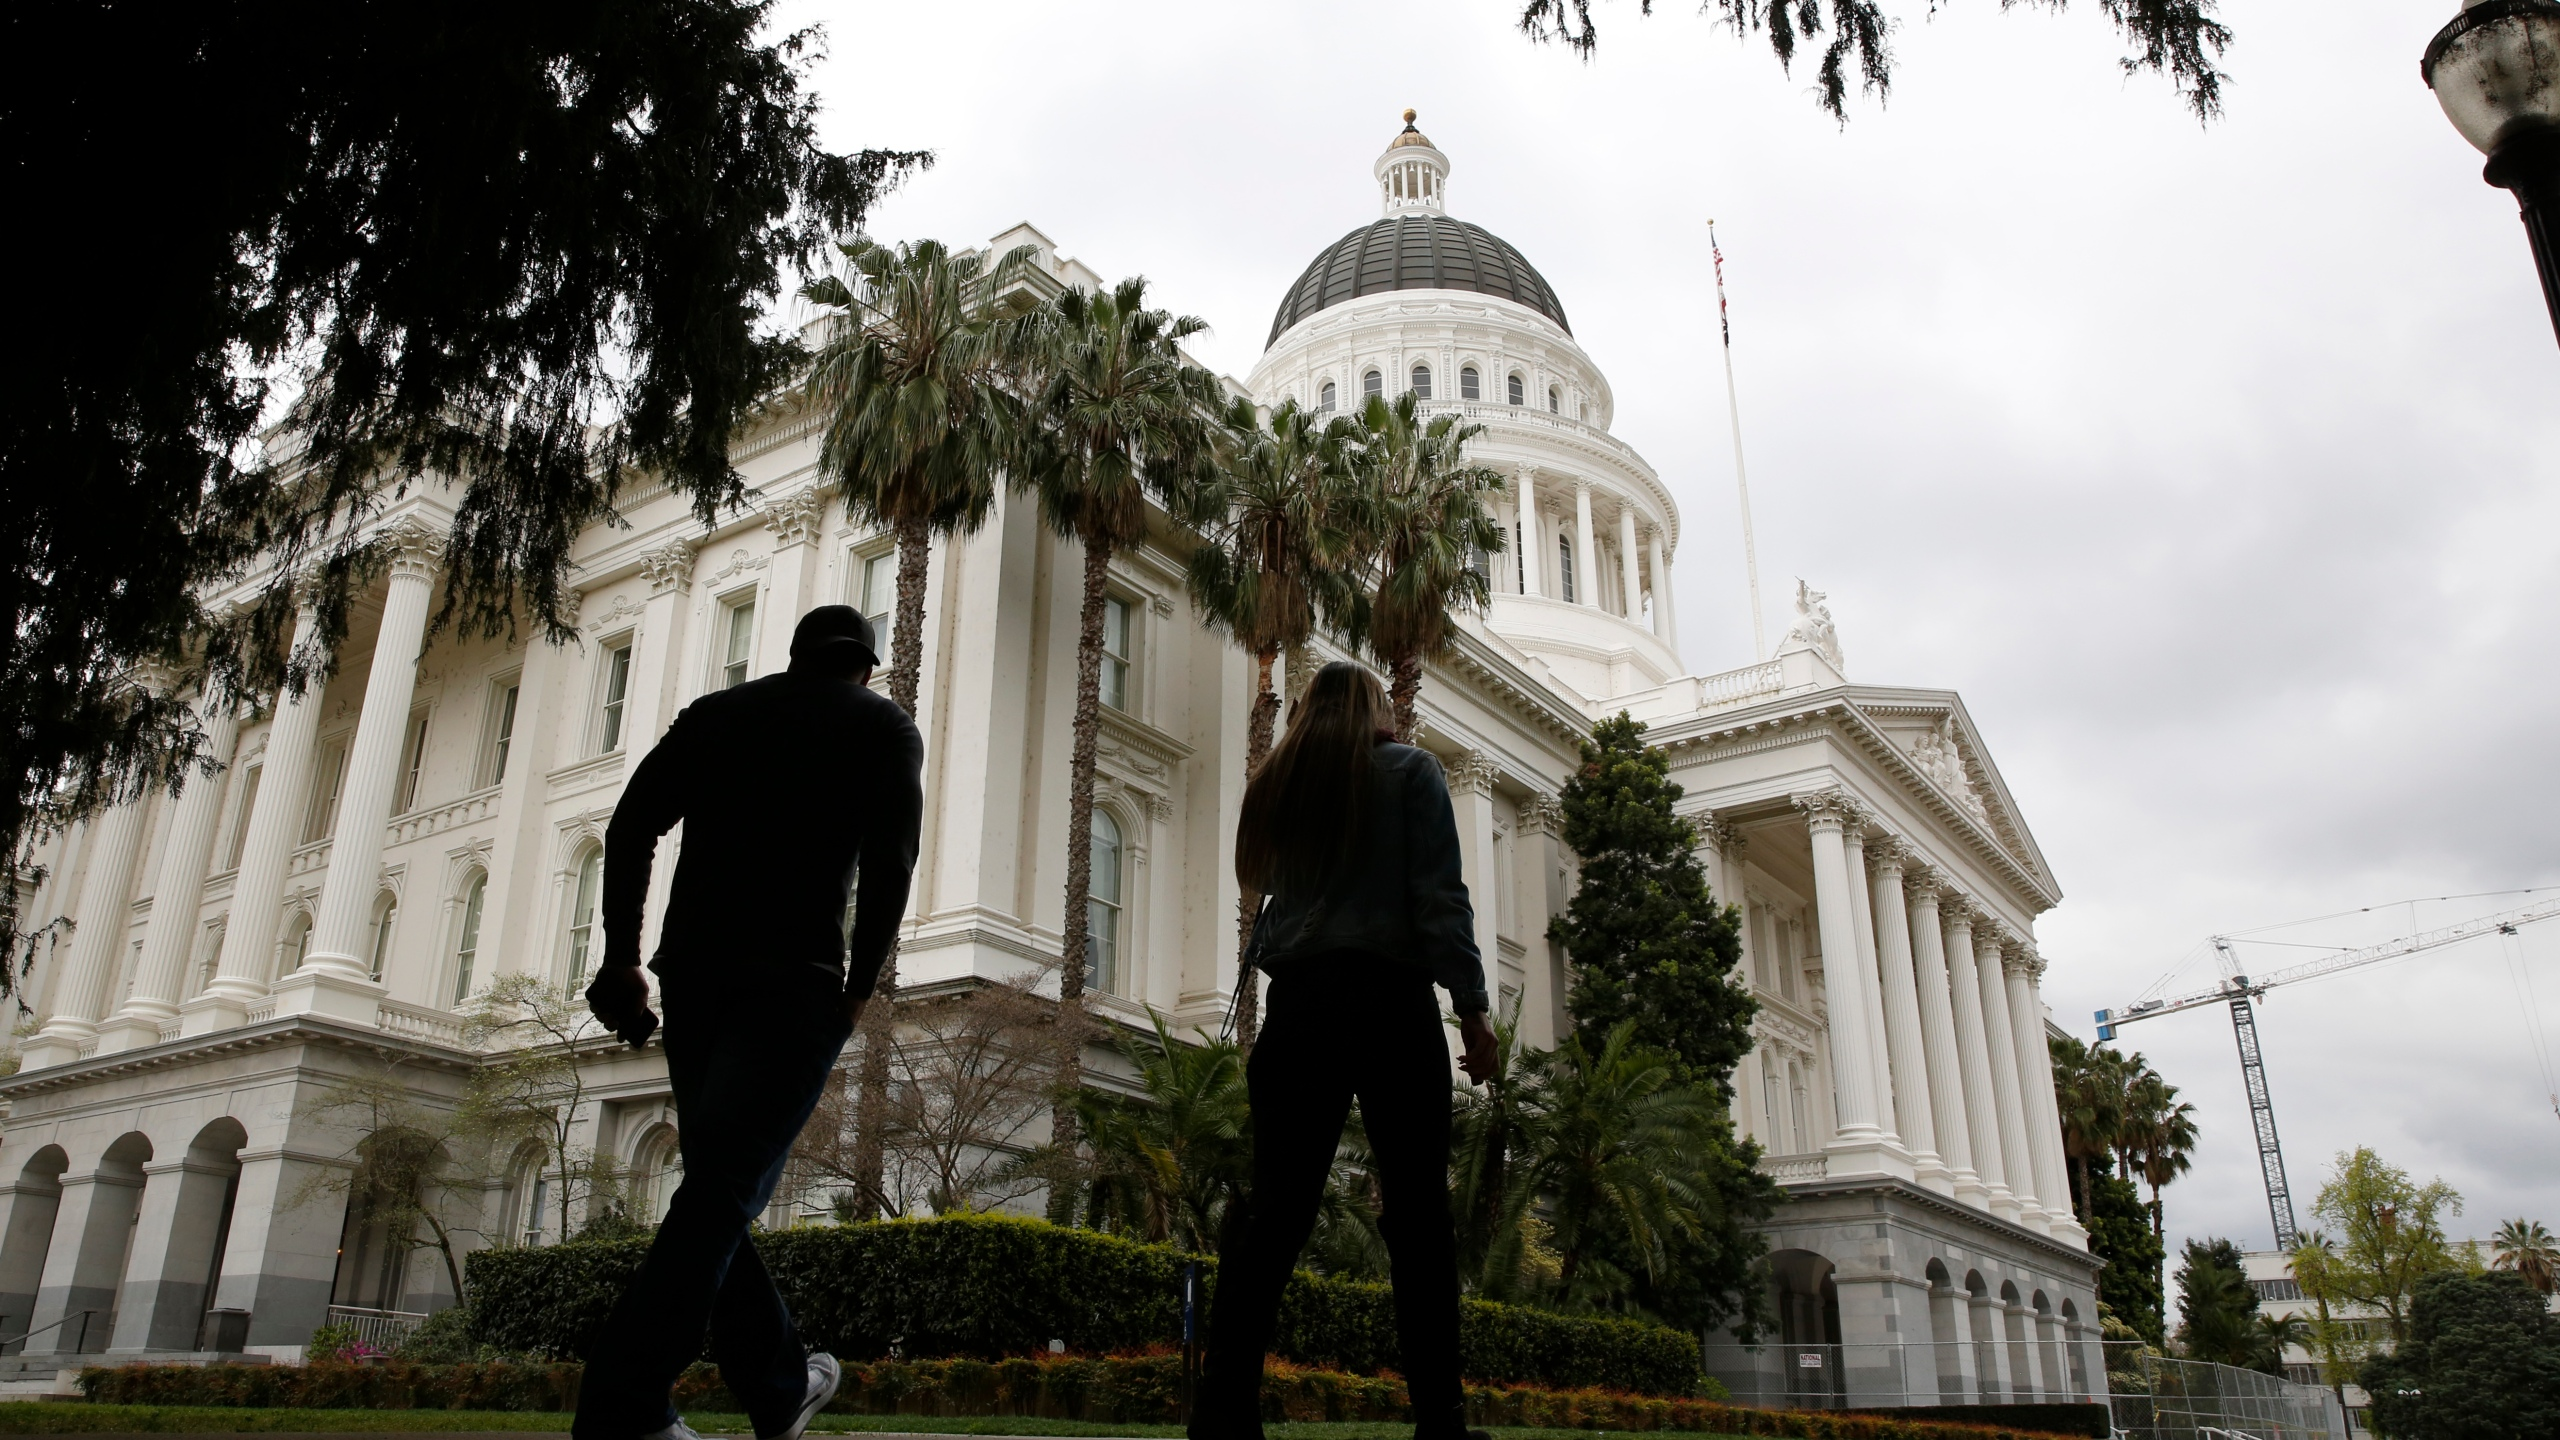 People walk near the state Capitol in Sacramento on March 18, 2020. (Rich Pedroncelli / Associated Press)